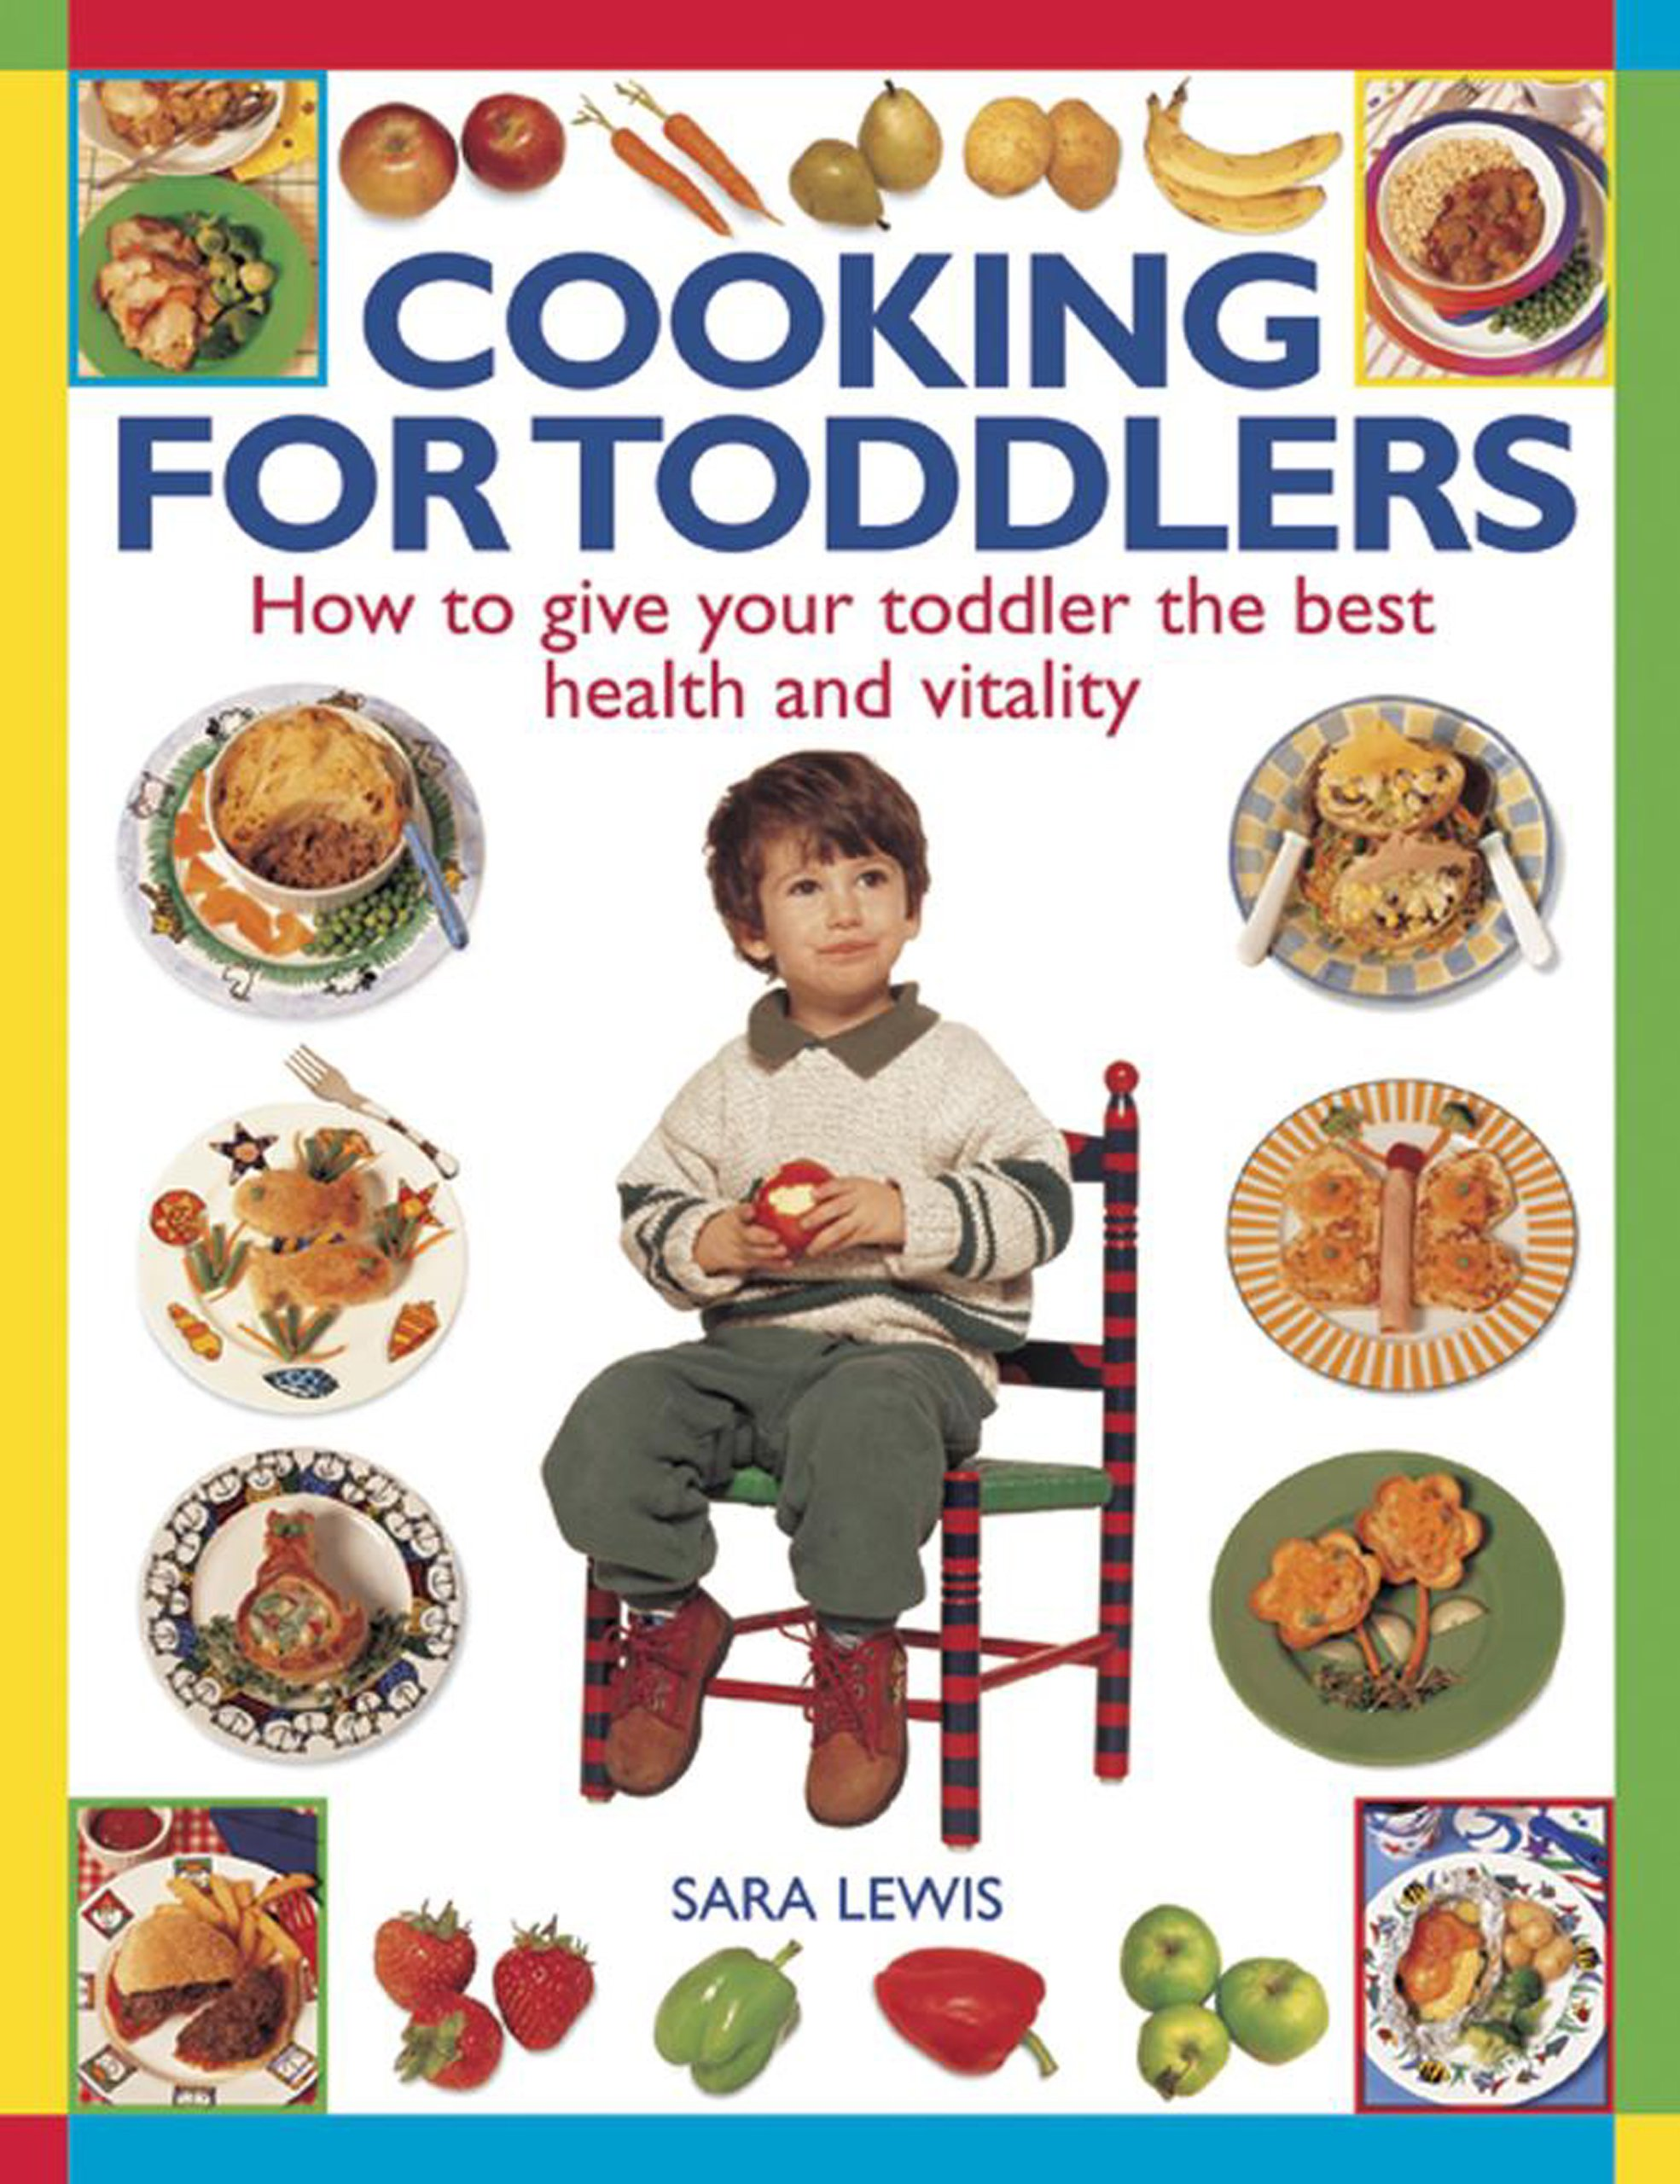 Cooking for Toddlers: How To Give Your Toddler The Best Health And Vitality pdf